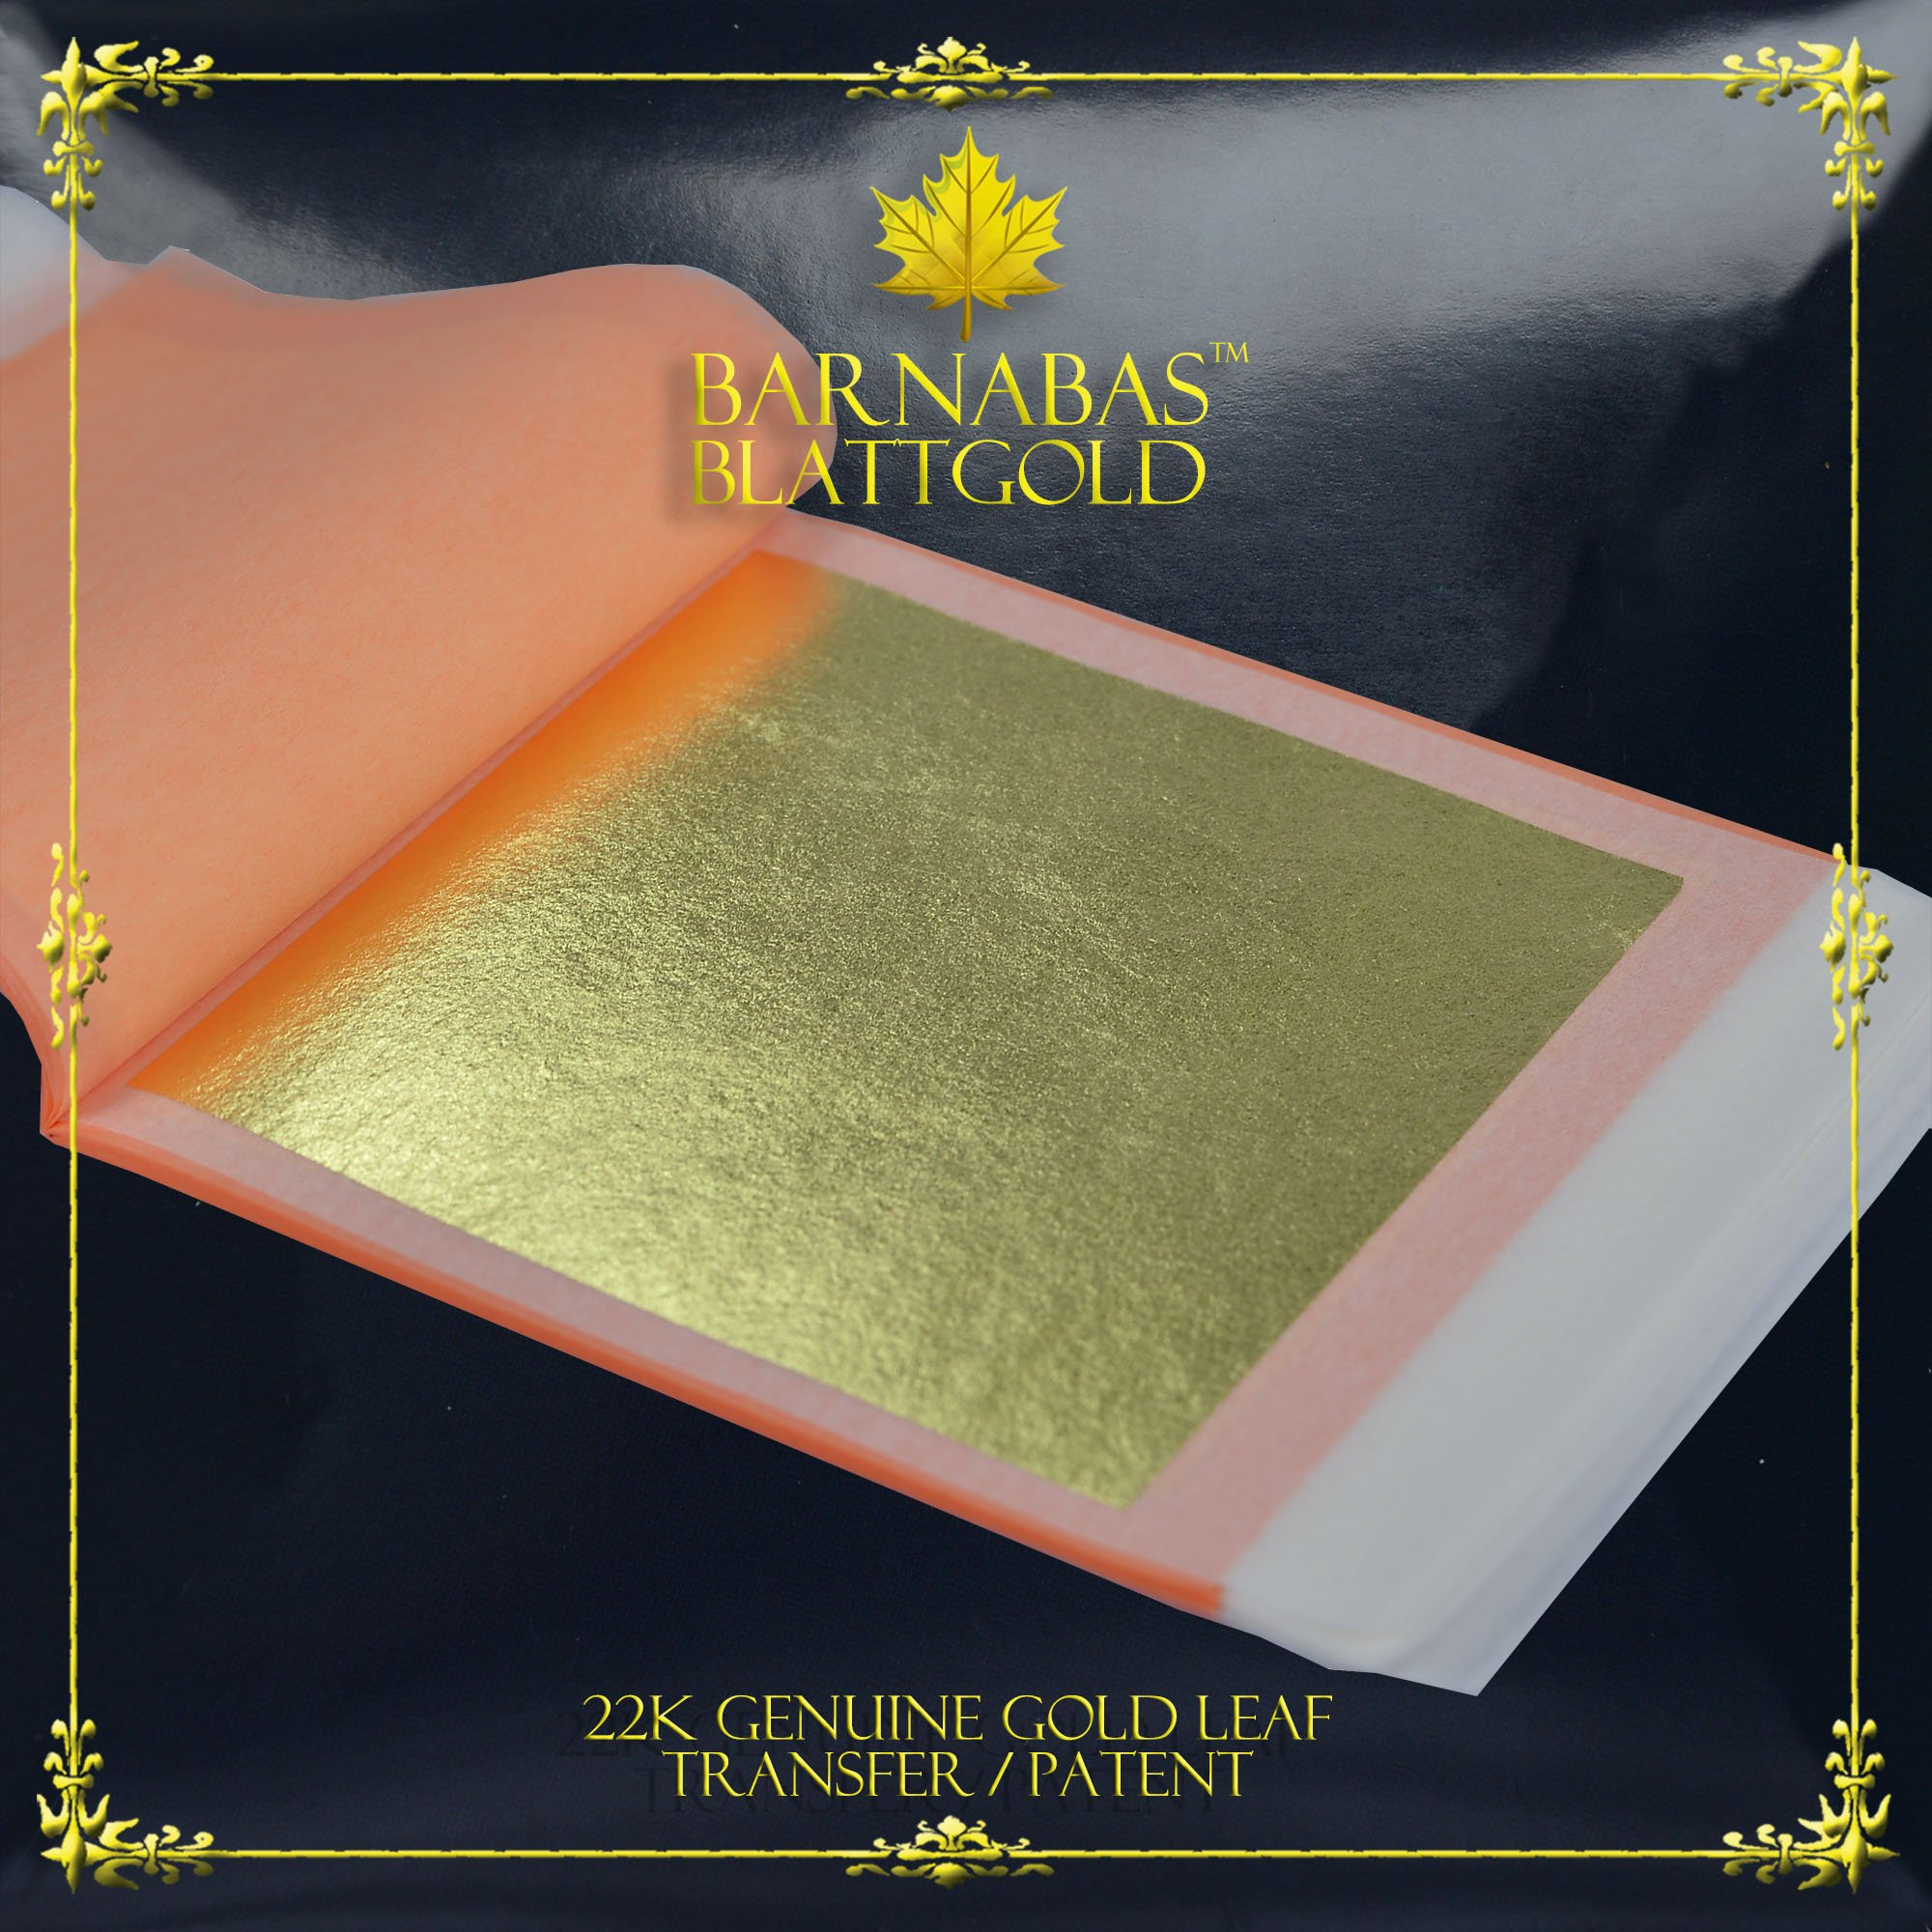 Genuine Gold Leaf Sheets 22k - by Barnabas Blattgold - 3.1 inches - 25 Sheets Booklet - Transfer Patent Leaf